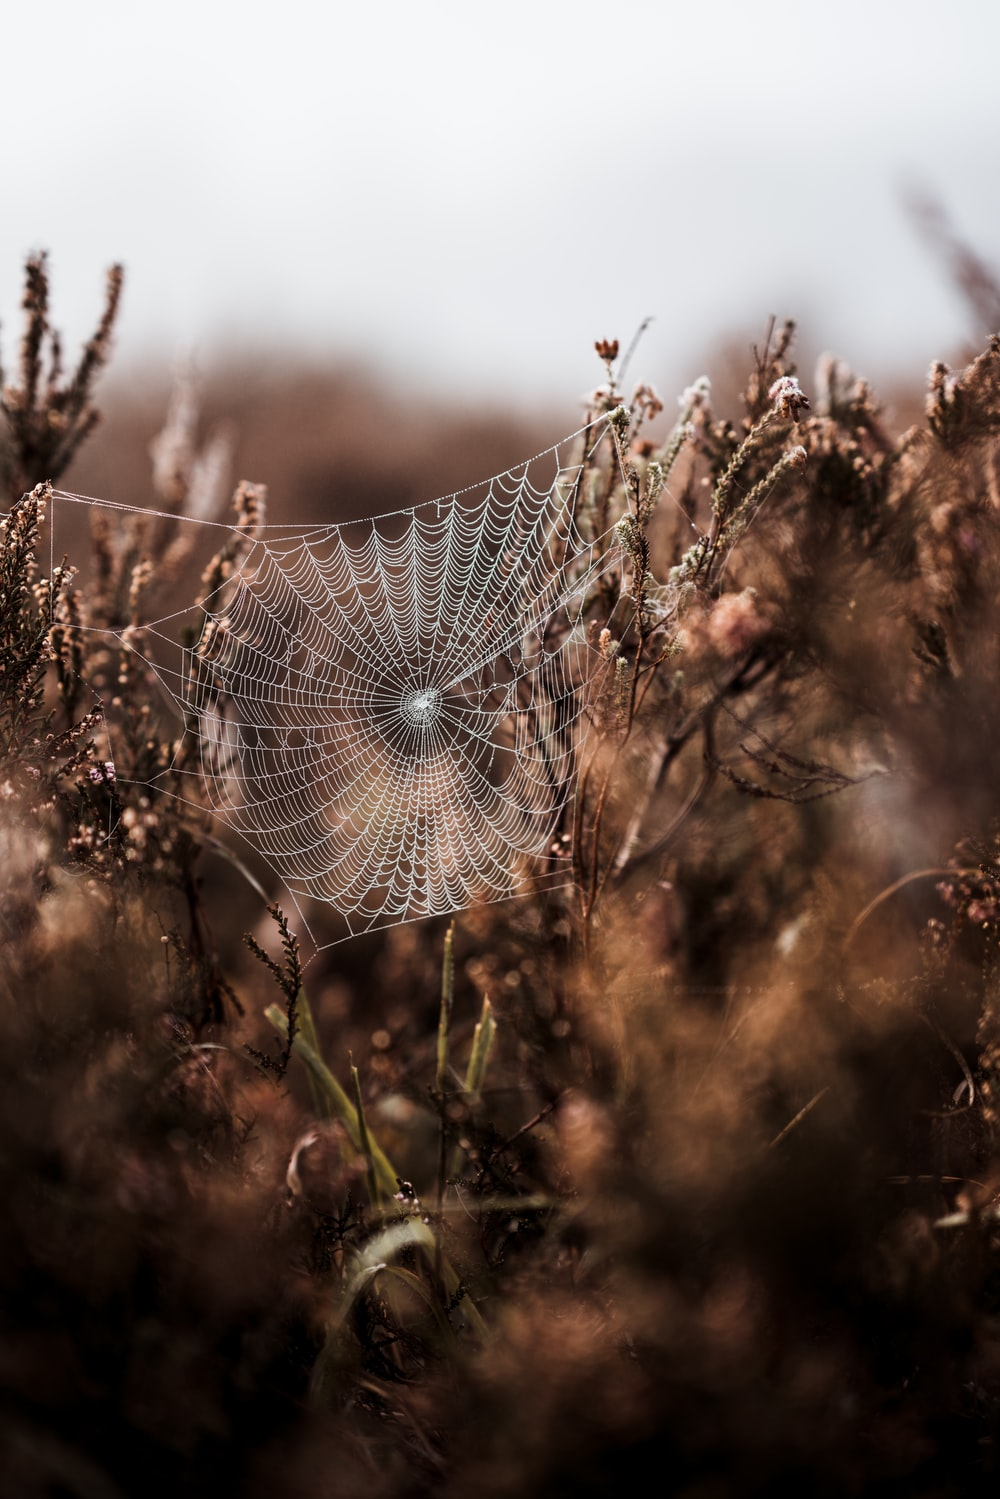 spider web in shallow photo